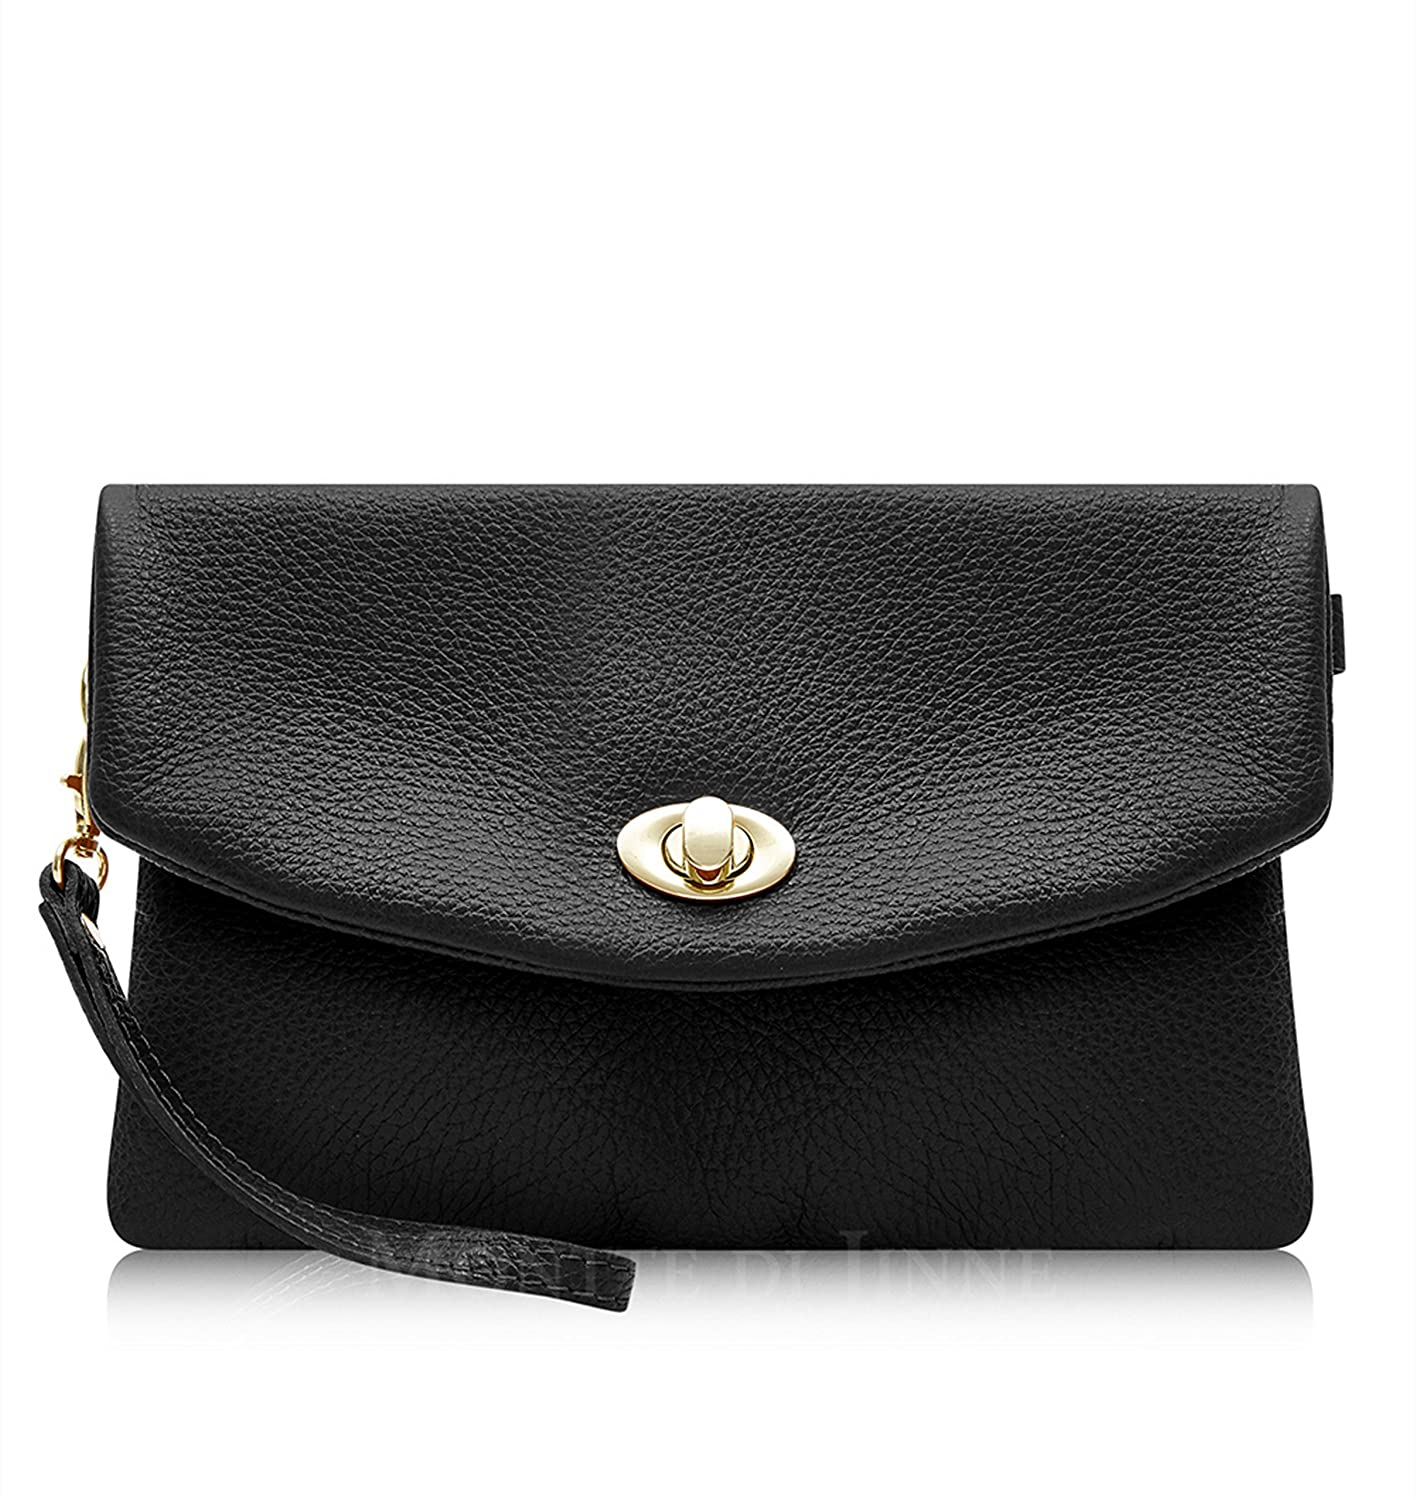 d2e0a0f5733d Italian Leather Soft Leather Clutch Bag - 100% Genuine Italian Leather  (Black)  Amazon.co.uk  Shoes   Bags